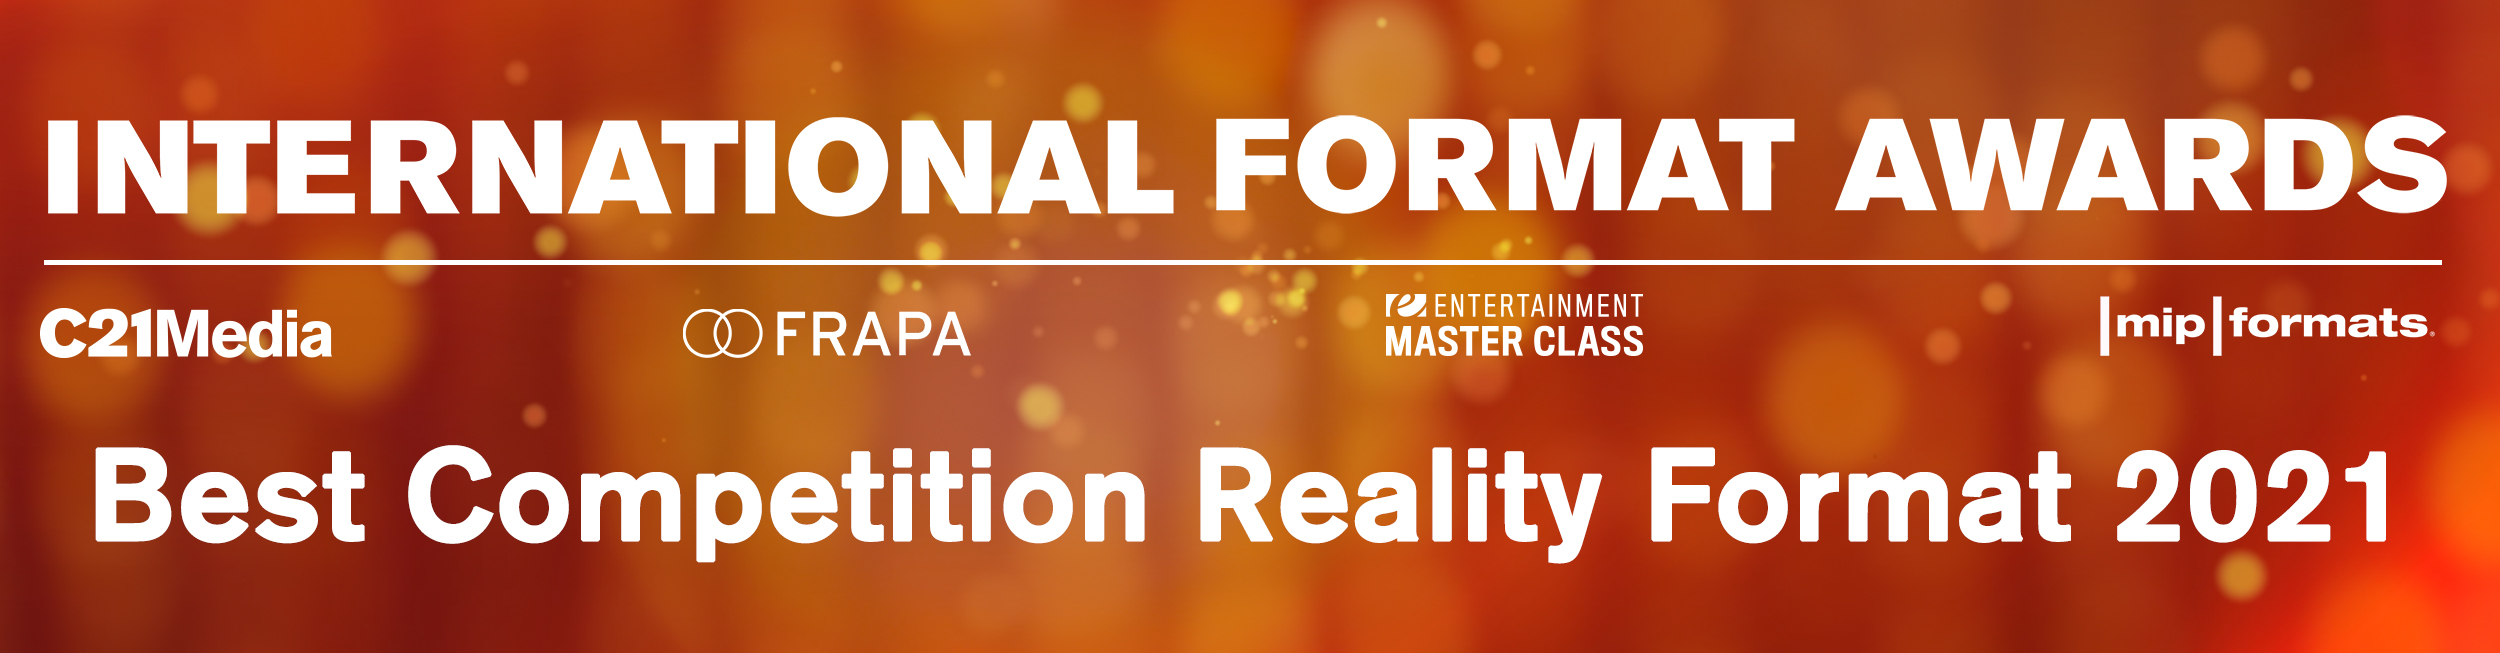 IFA Competition Reality Banner 2021